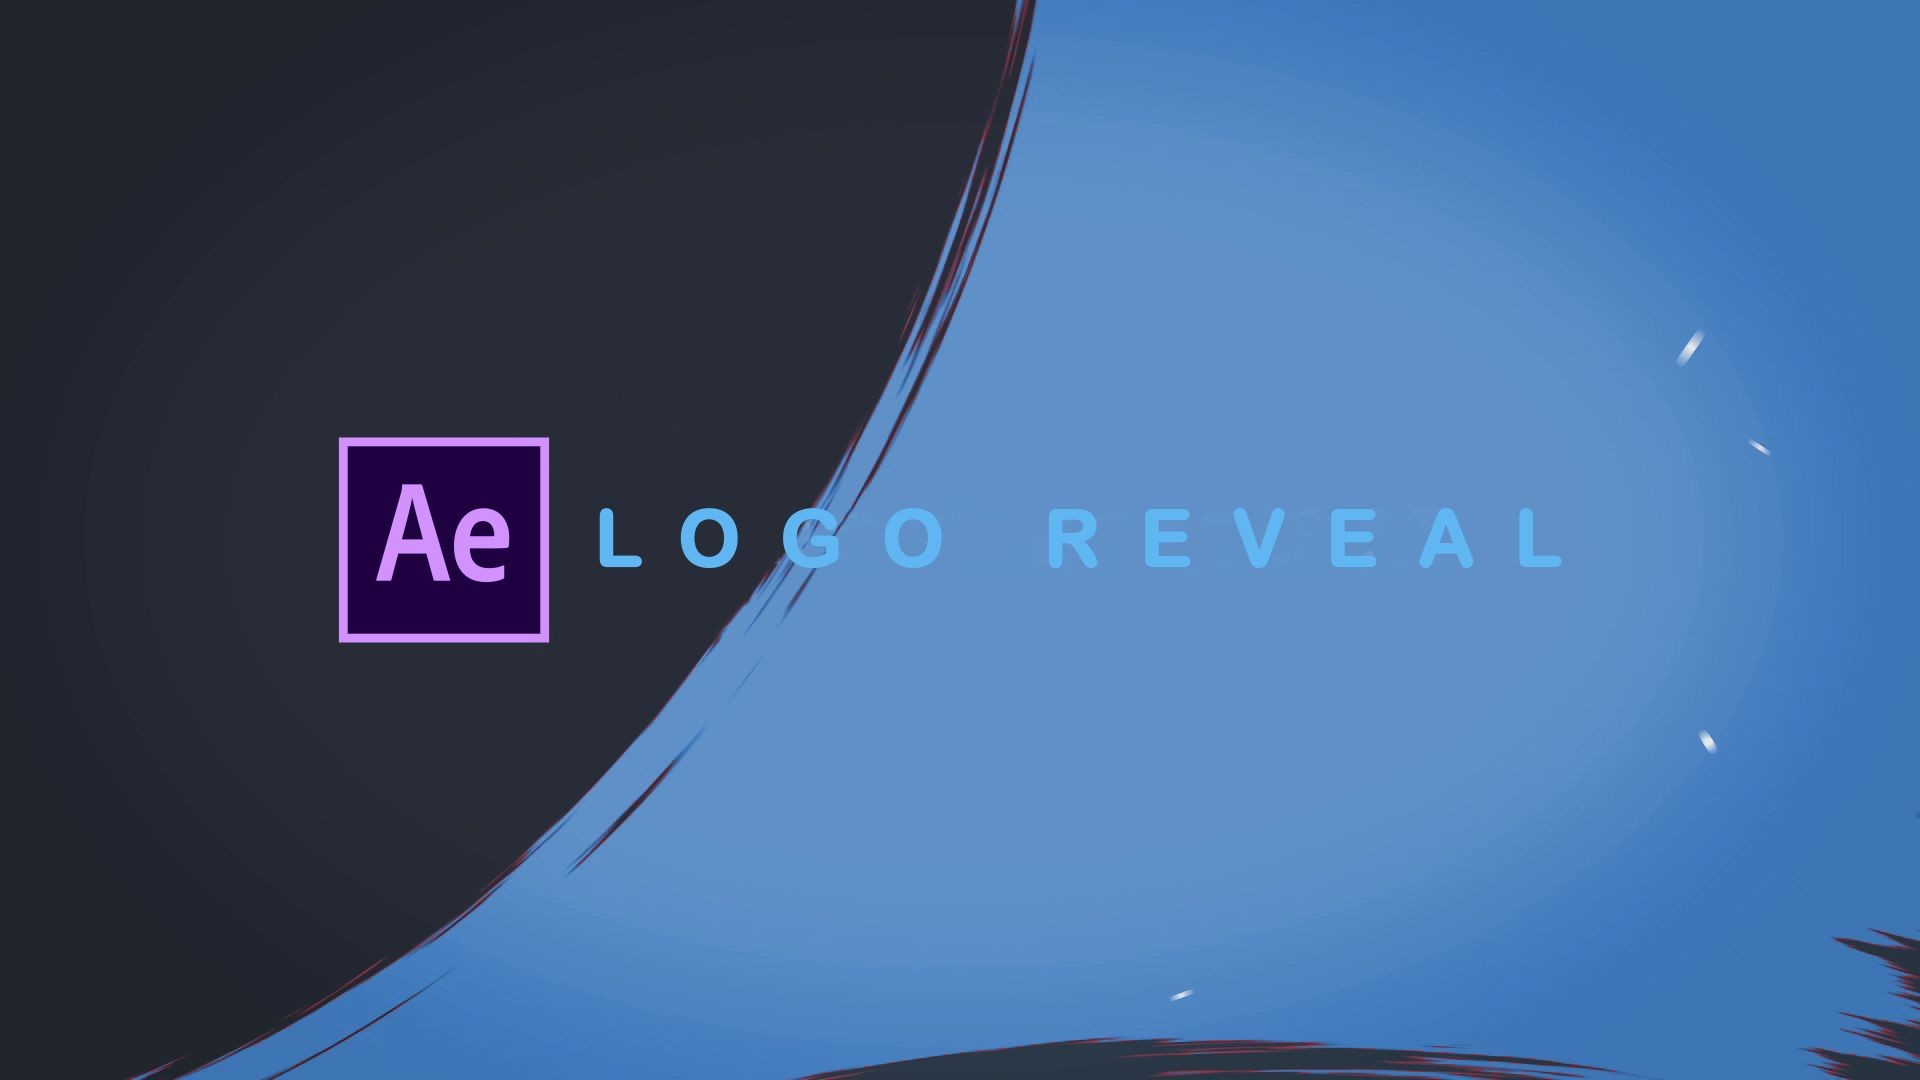 006 Shocking Adobe After Effect Logo Template Free Download Sample  Cs6 Title Animation1920